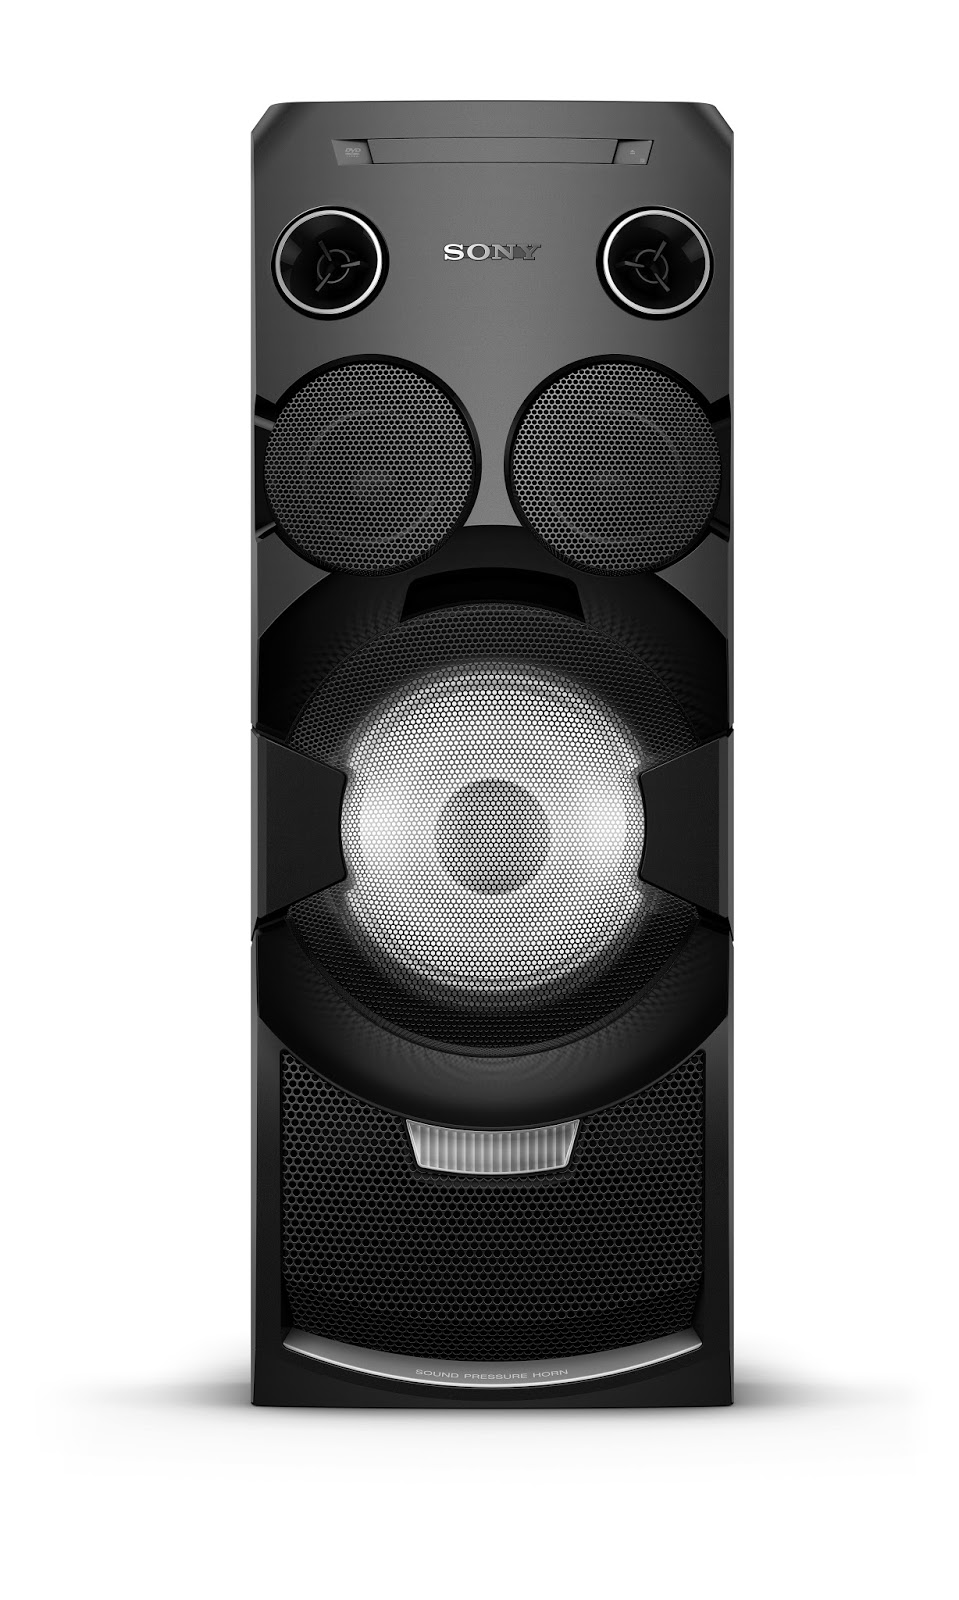 Wireless bluetooth hi fi system for home mhc v7d sony uk - The New Mhc V7d Mini Hi Fi System From Sony Will Be Available At Selected Sony Stores And Authorised Dealers From August Onwards At A Recommended Retail